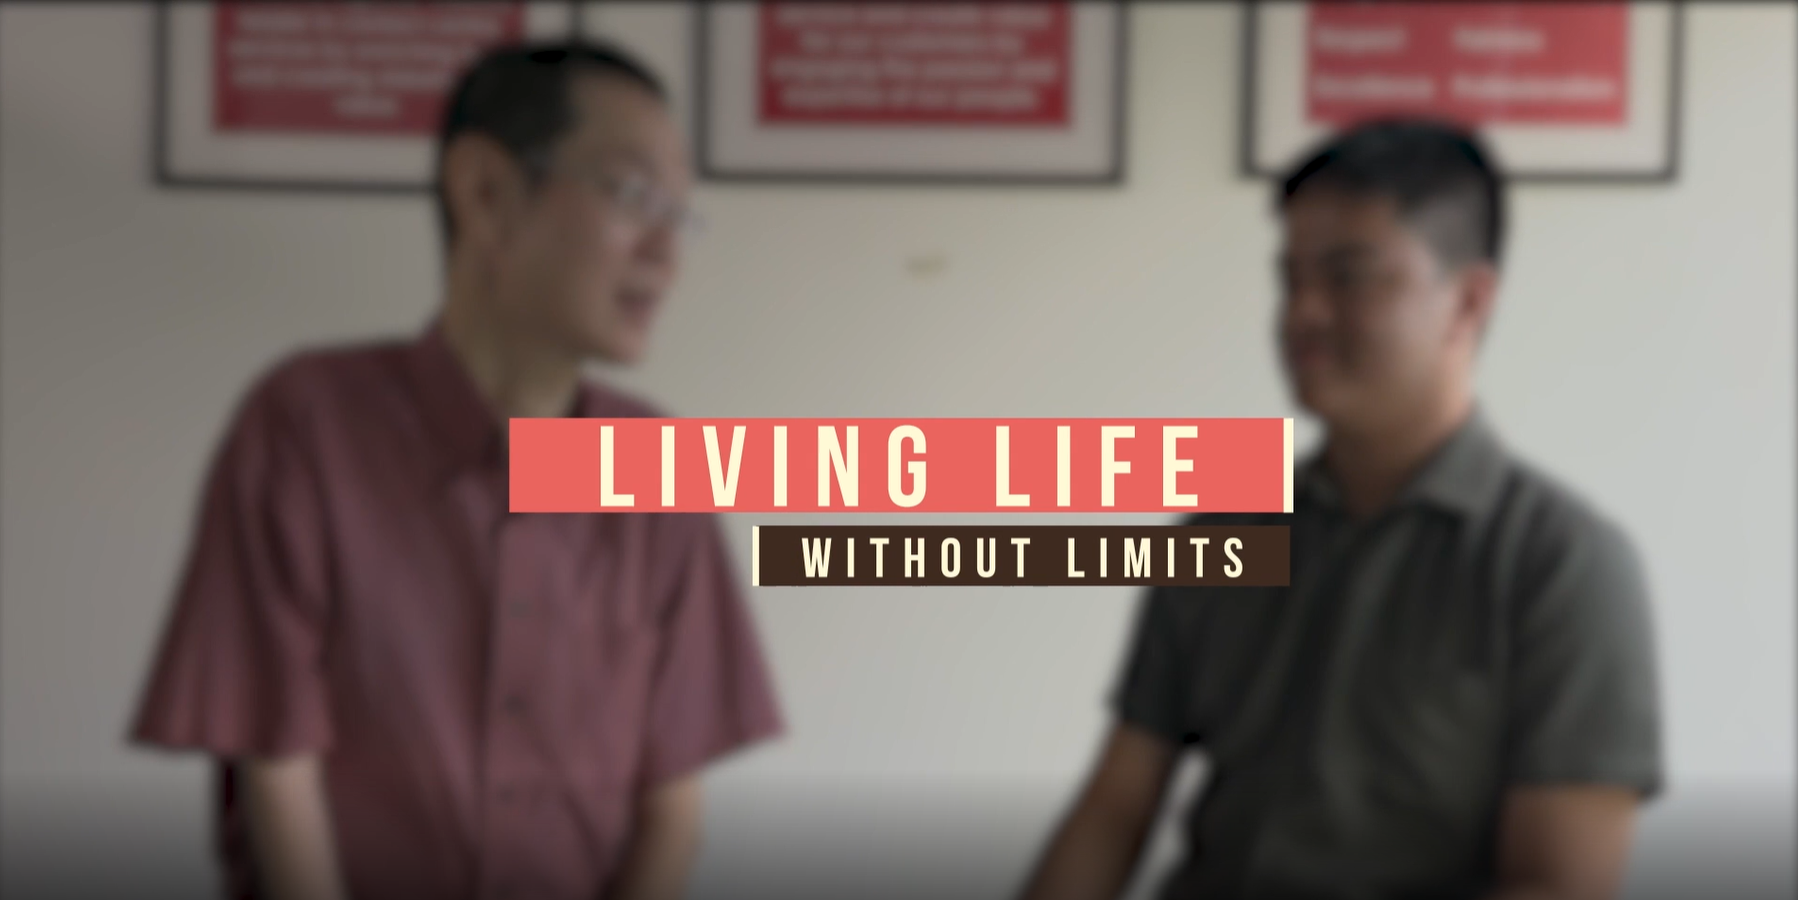 Heartwarming: Living Life Without Limits